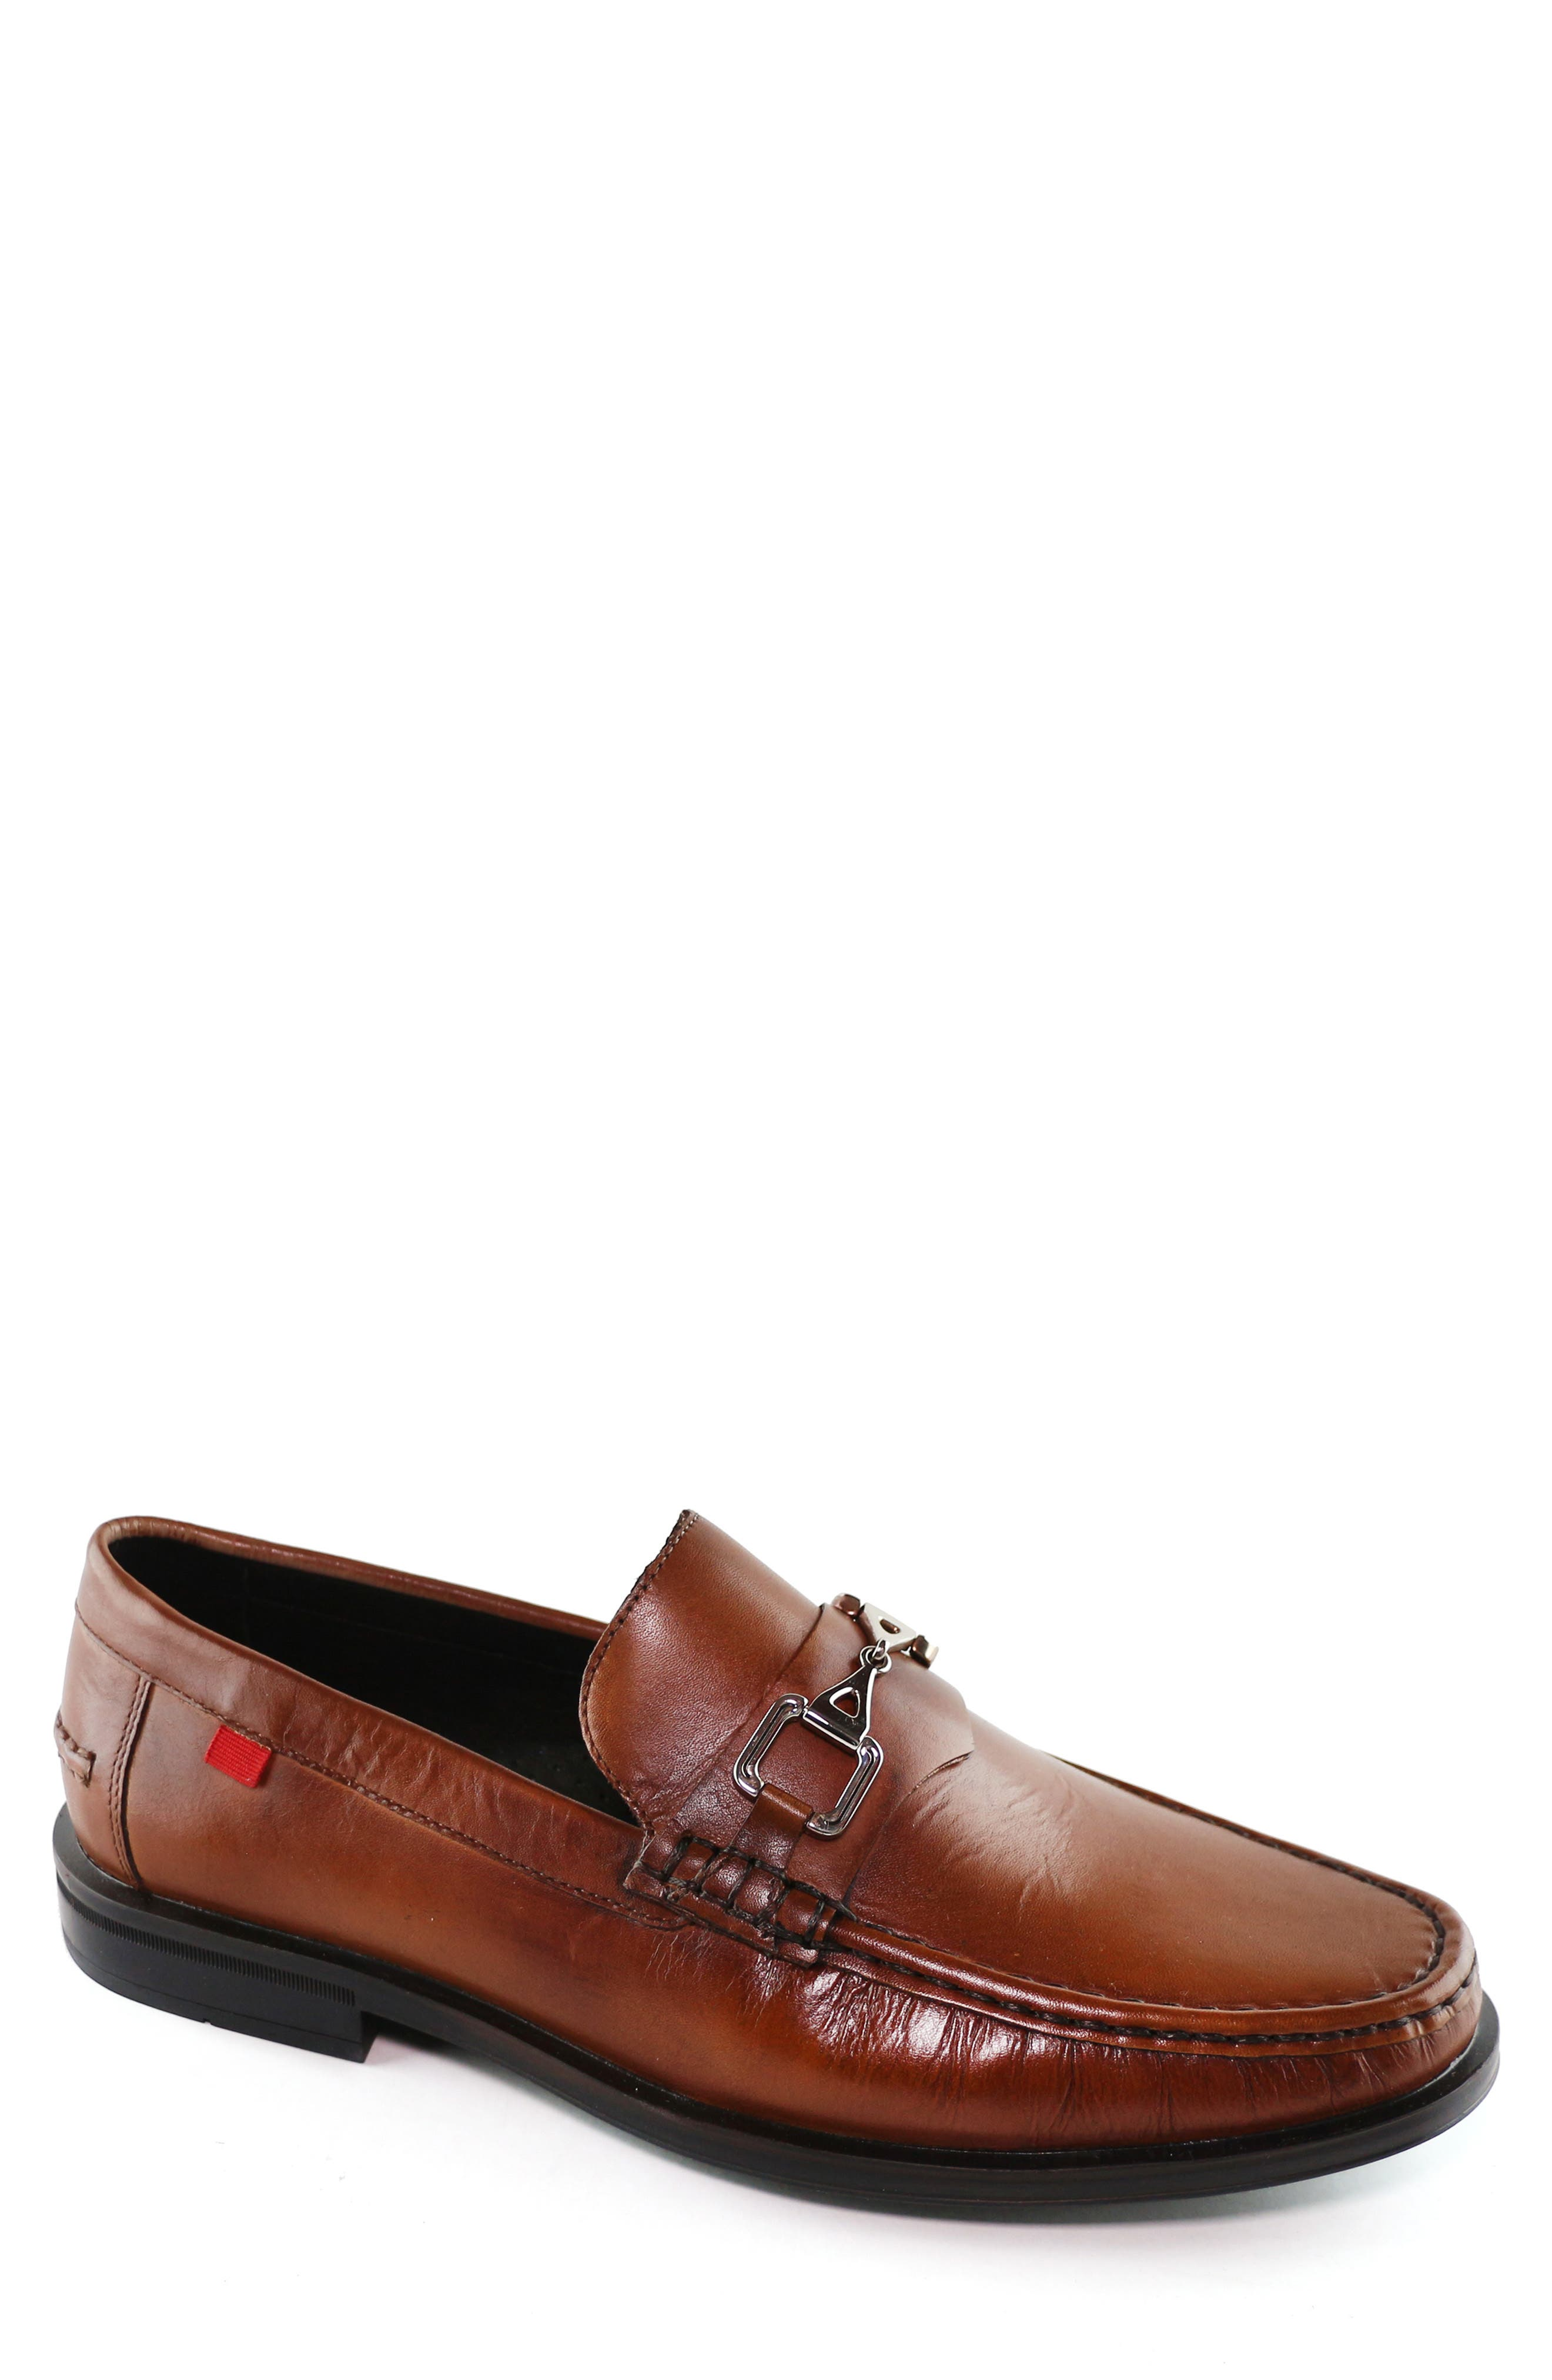 MARC JOSEPH NEW YORK Astoria Bit Loafer, Main, color, WHISKEY LEATHER